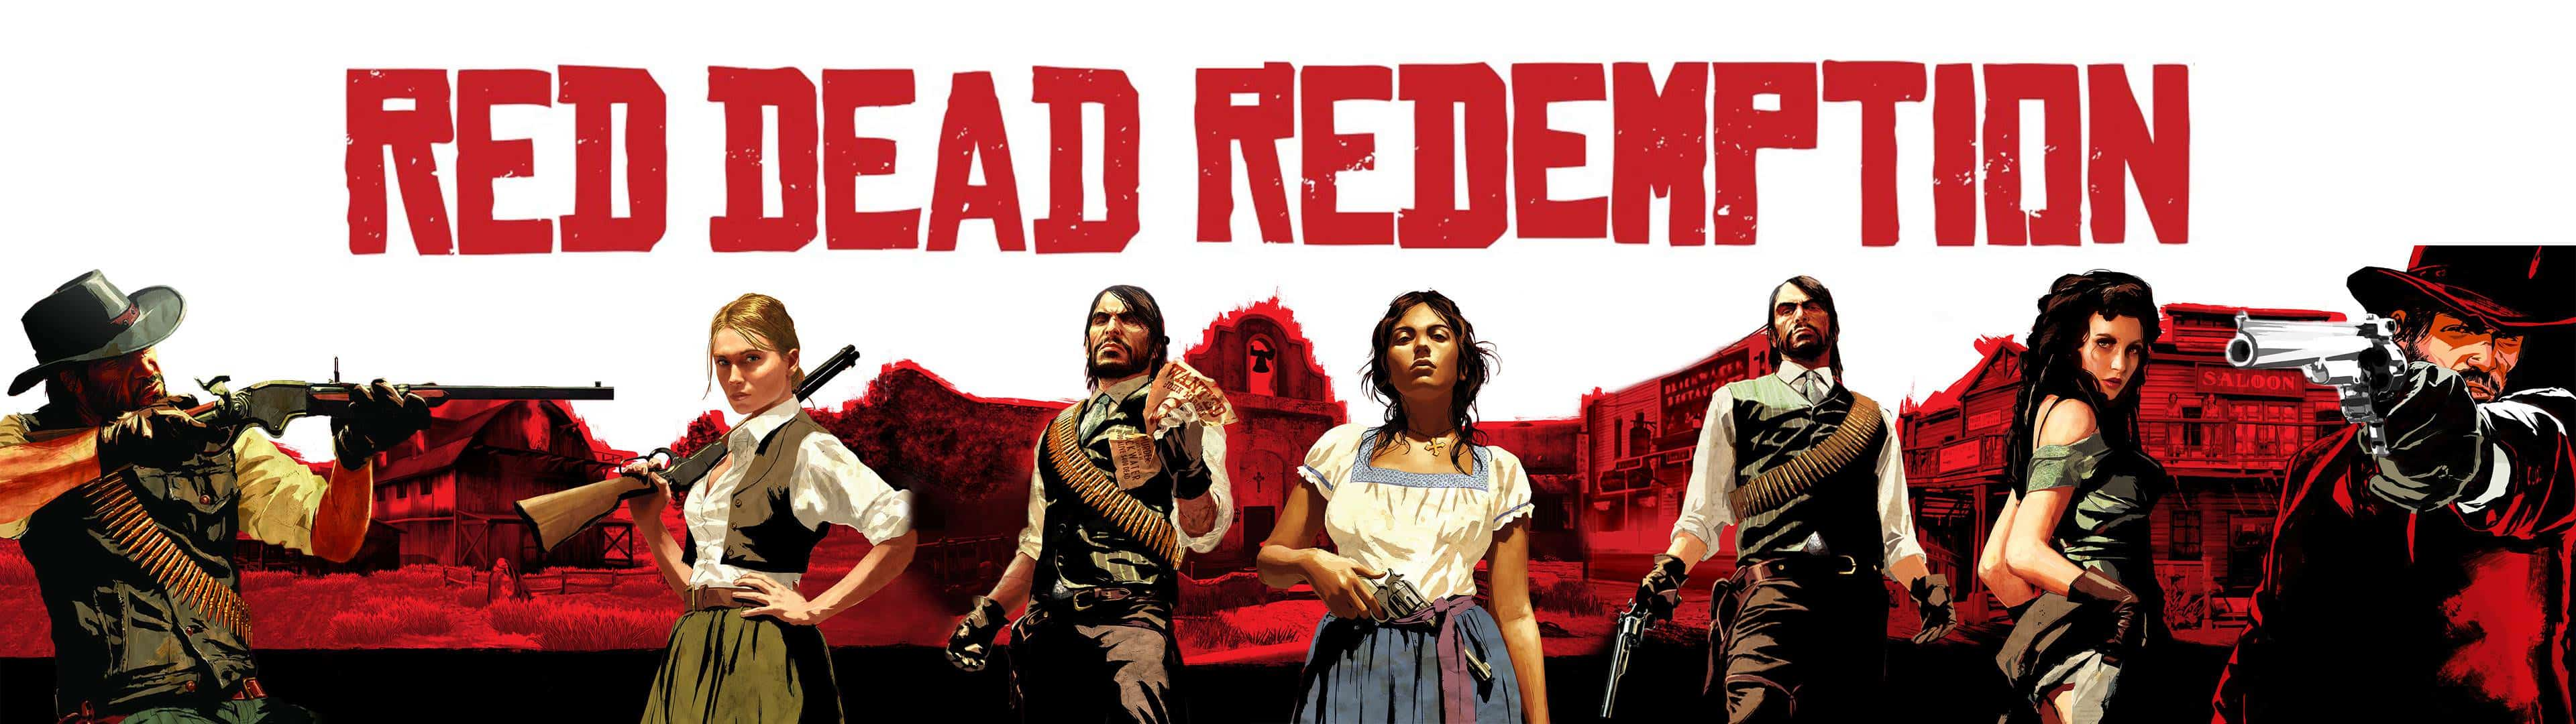 3840x1080 Red Dead Redenmption Cover Dual Monitor Wallpaper | Pixelz